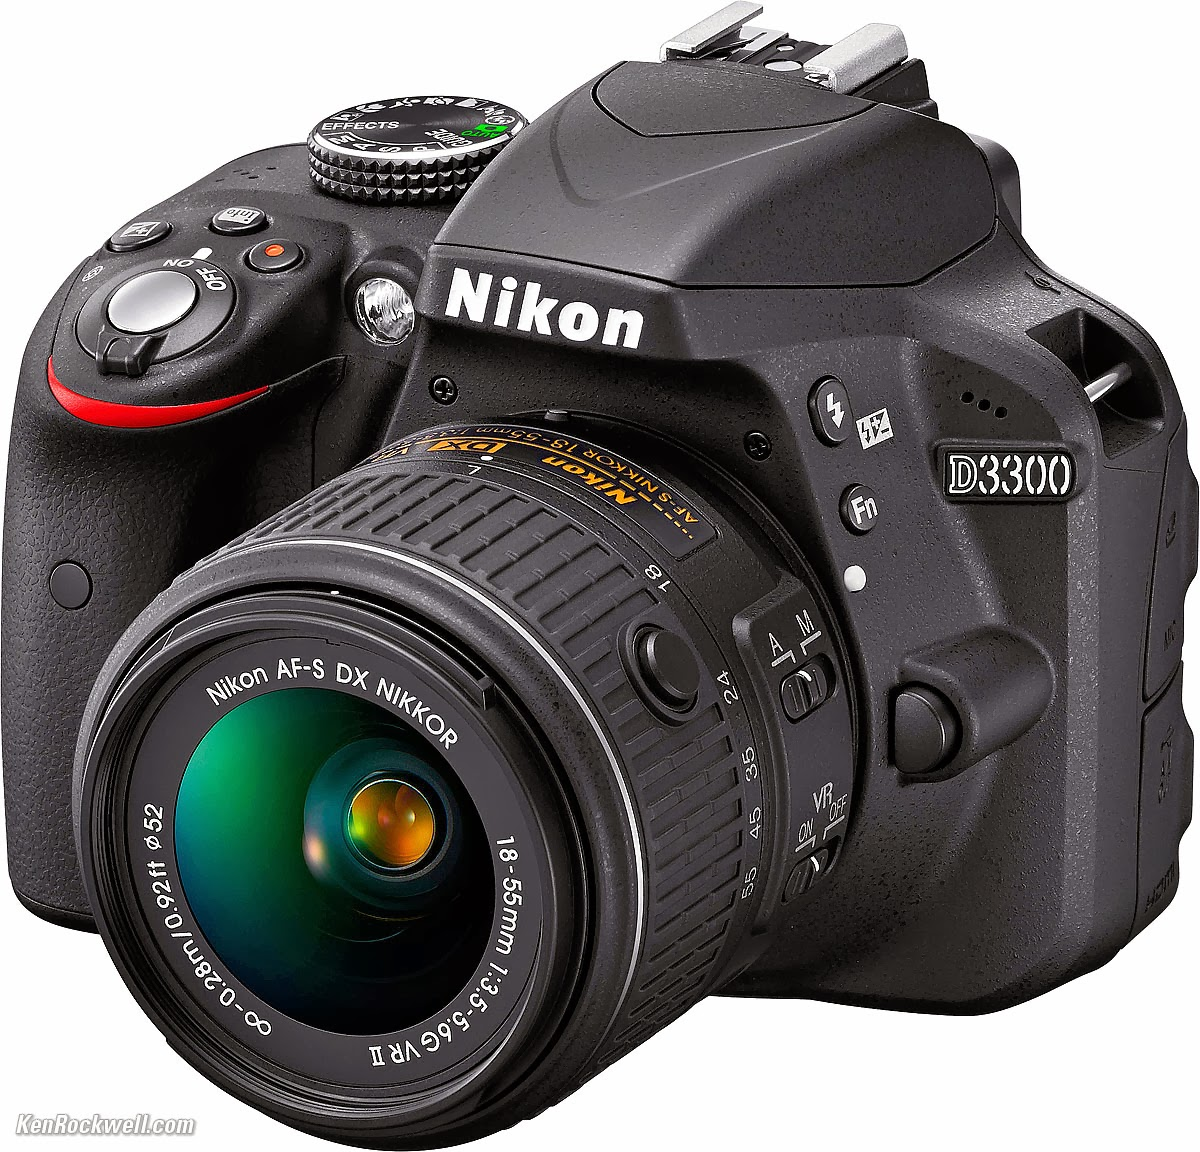 Nikon D3300, entry-level DSLR, DSLR camera, special effect, art filter, full HD, new lens, Nikon lens, Wi-Fi, Android, iOS